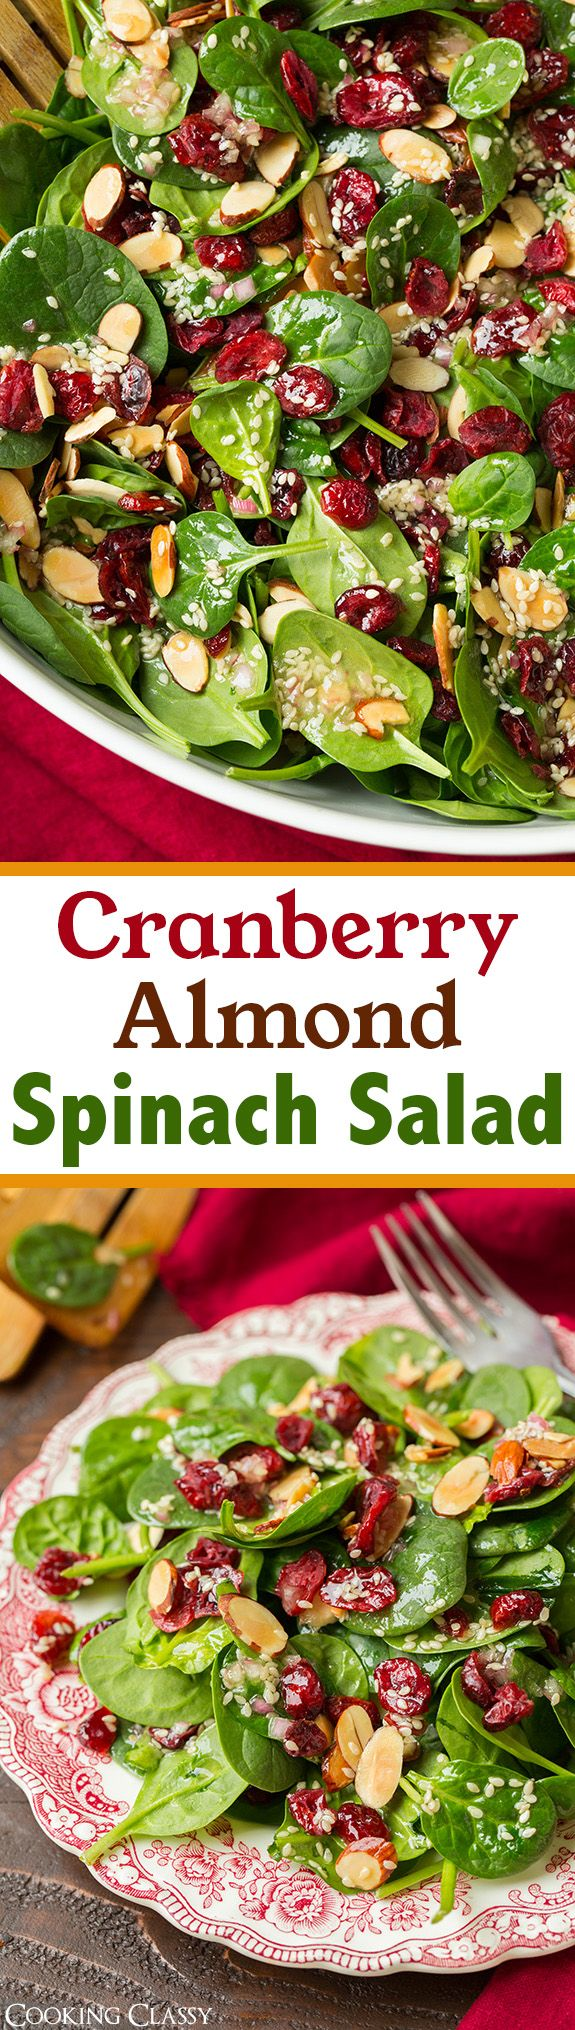 Cranberry Almond Spinach Salad with Sesame Seed Dressing - A ...